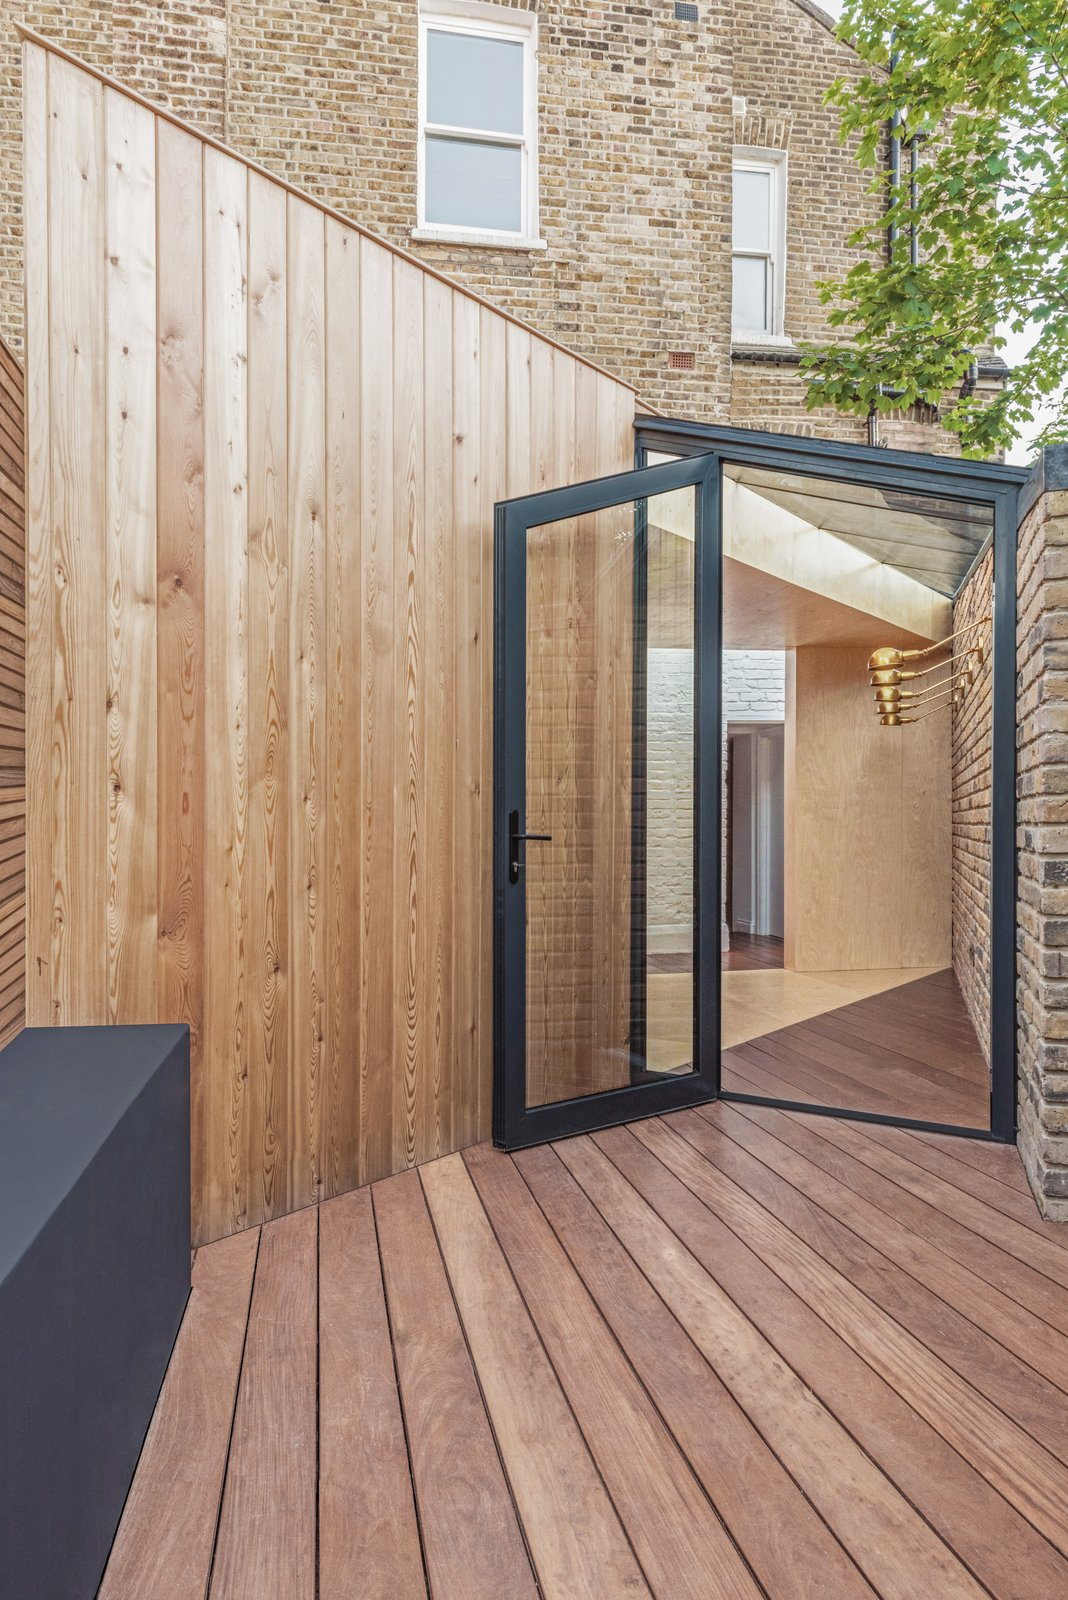 Outdoor, Back Yard, Small Patio, Porch, Deck, and Decking Patio, Porch, Deck The patio area floor is finished with a dark-stained decking, surrounding and contrasting the pale-colored plywood.  Best Photos from A Crafty Triangular Addition Carves Out Office Space in a London Backyard